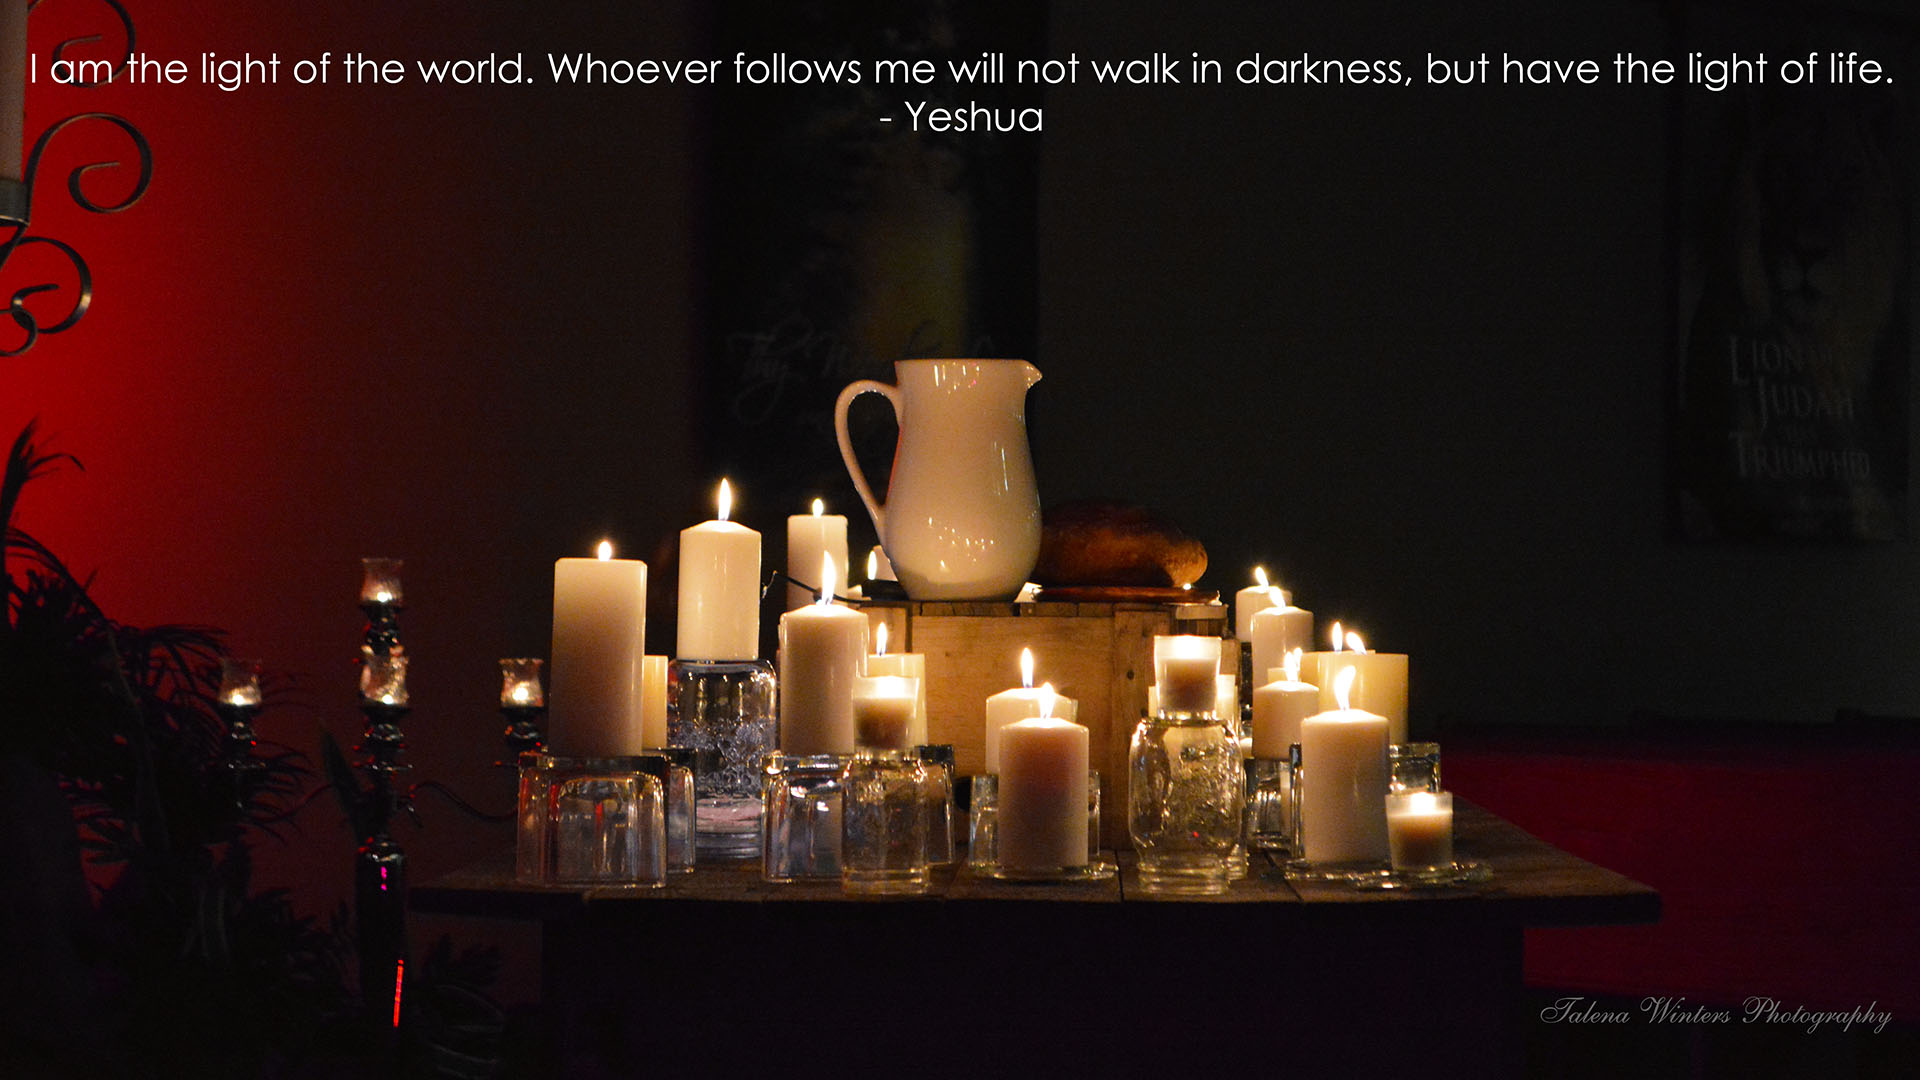 """""""I am the light of the world. Whoever follows me will not walk in darkness, but have the light of life."""" John 8:12 (ESV). To set as wallpaper, click on image, right-click, and """"Set as wallpaper."""" To see more of my free wallpapers, visit  this page ."""